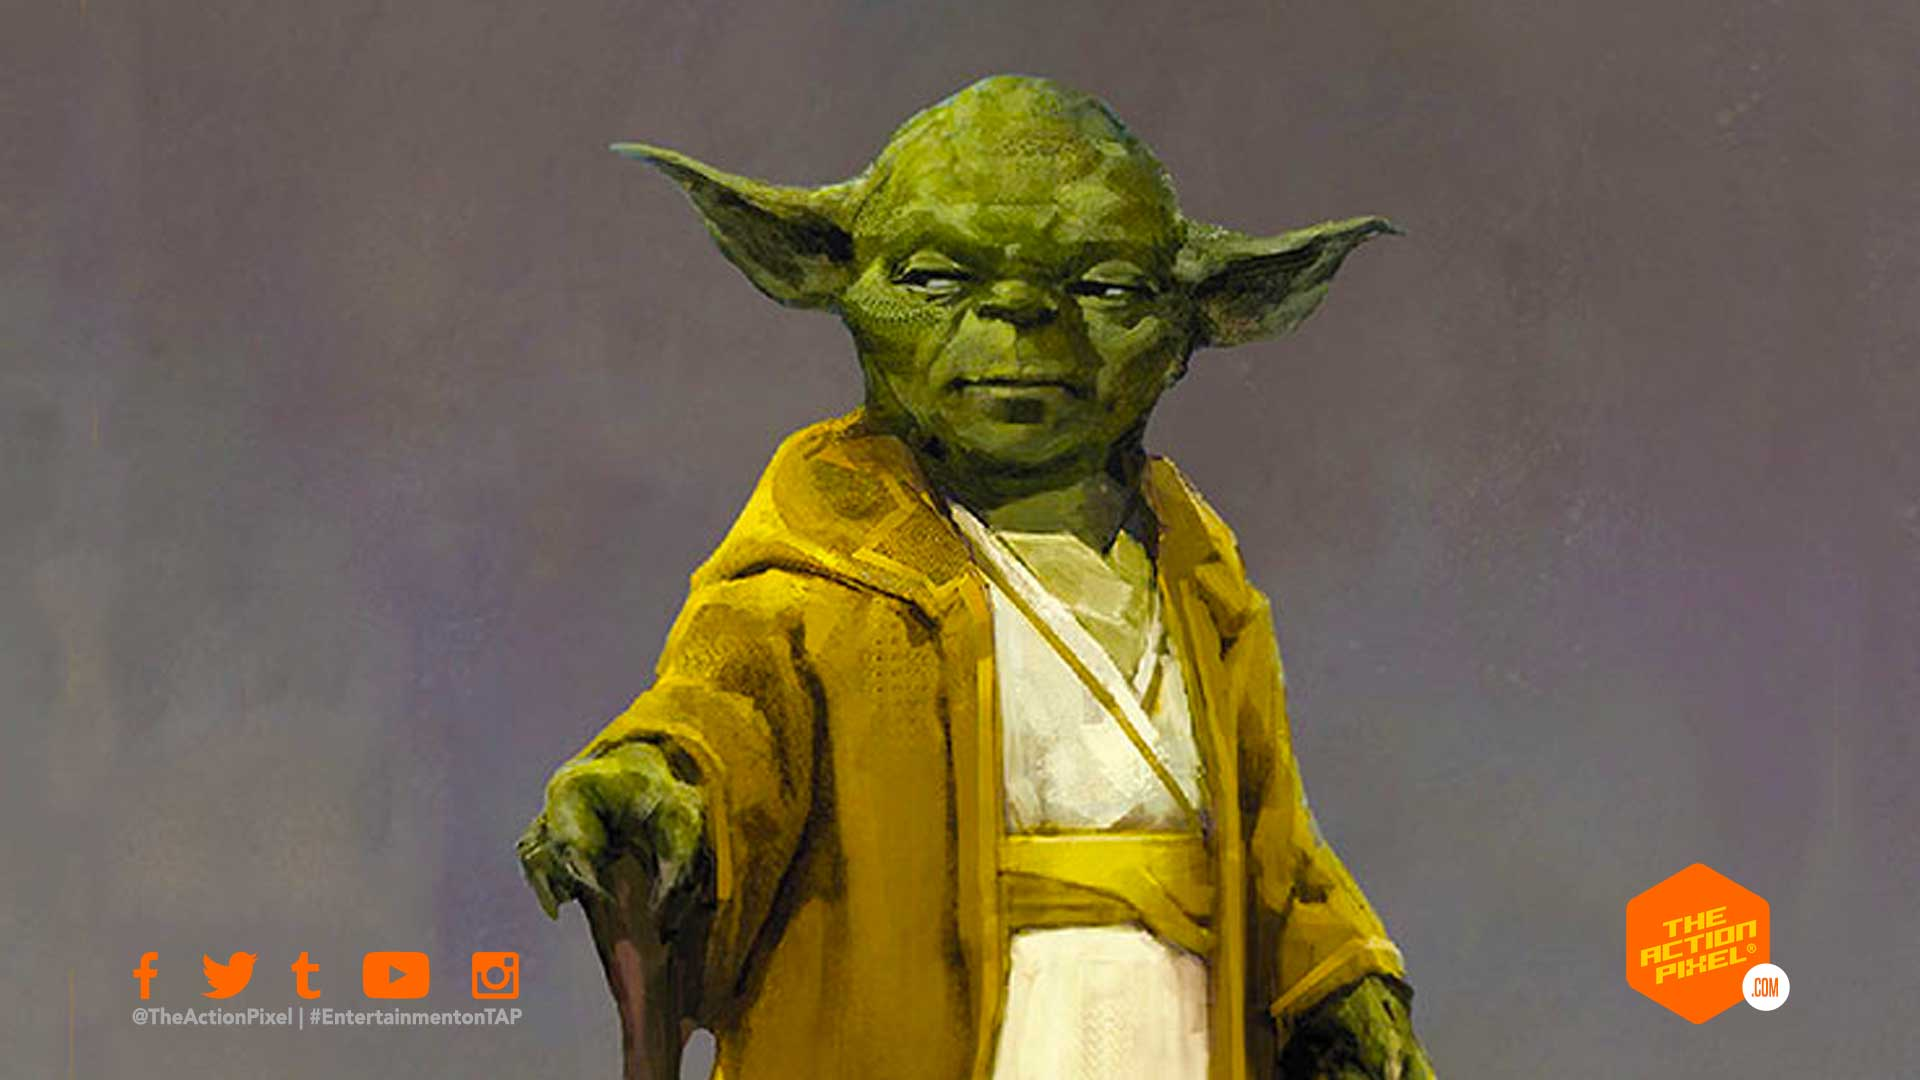 yoda, the high republic, star wars: the high republic adventures, Daniel José Older, the high republic adventures, entertainment on tap,featured, the action pixel,